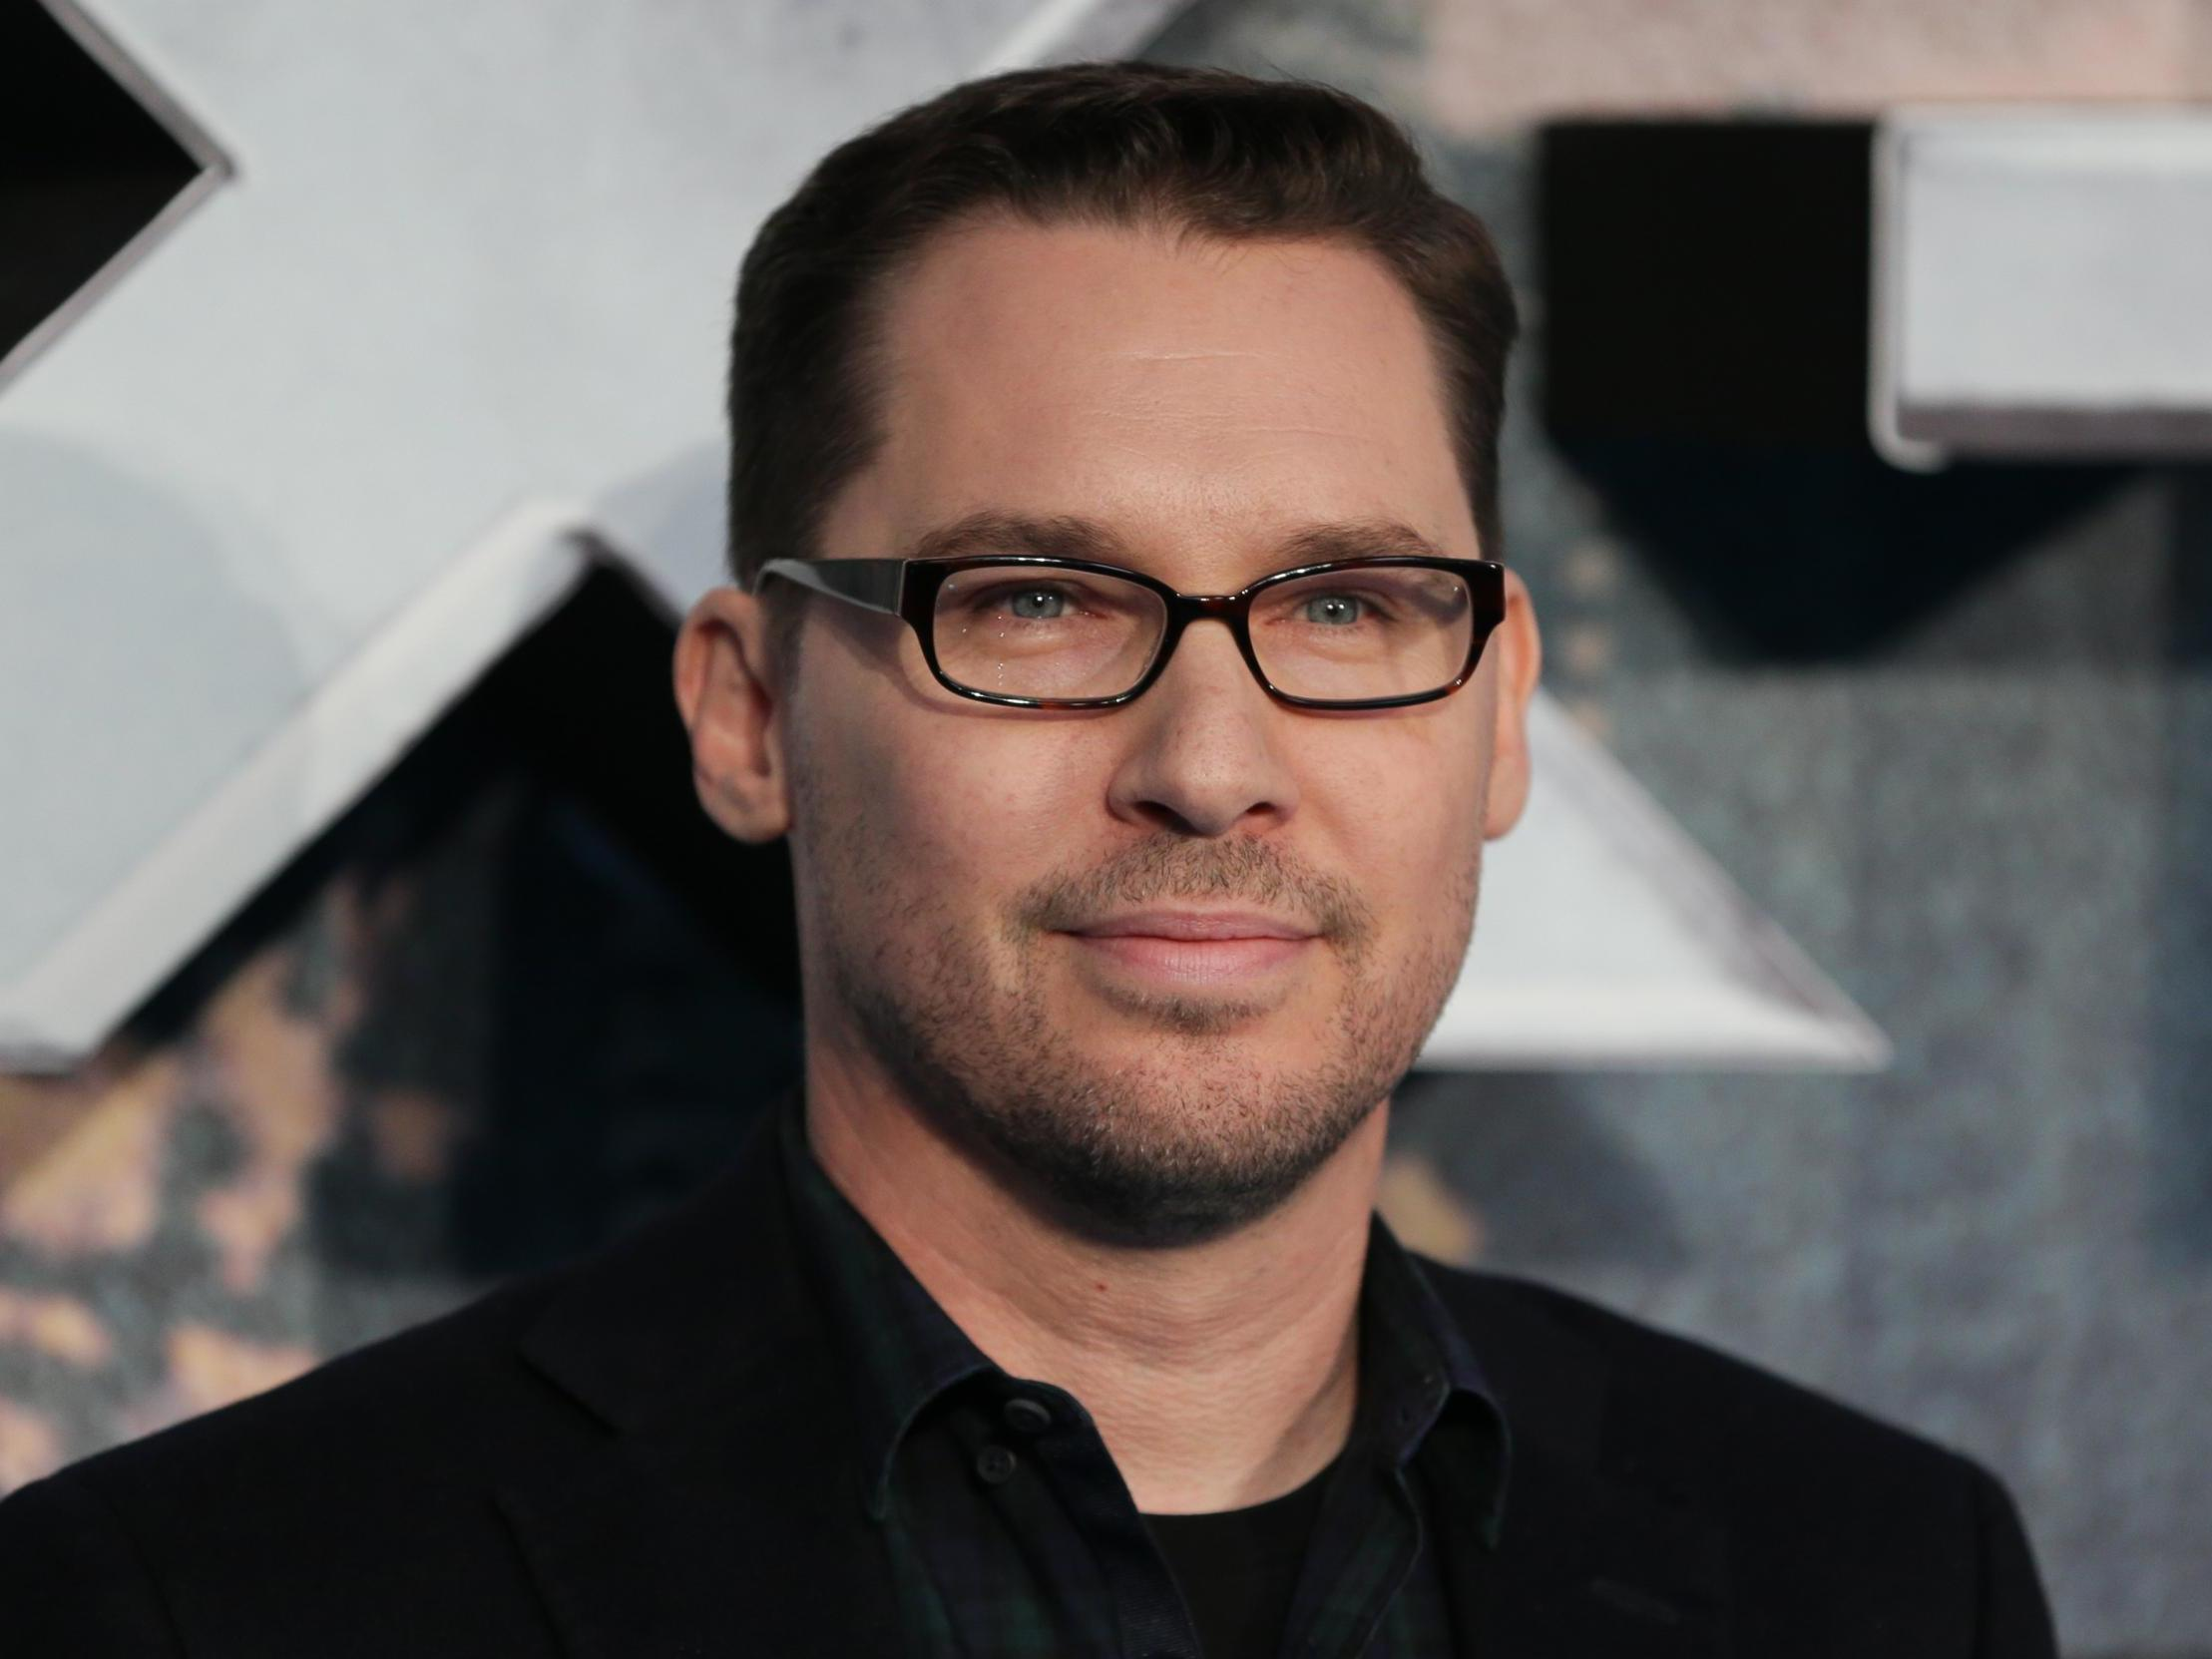 Bryan Singer: Bohemian Rhapsody director to pay £118,000 settlement over rape allegation